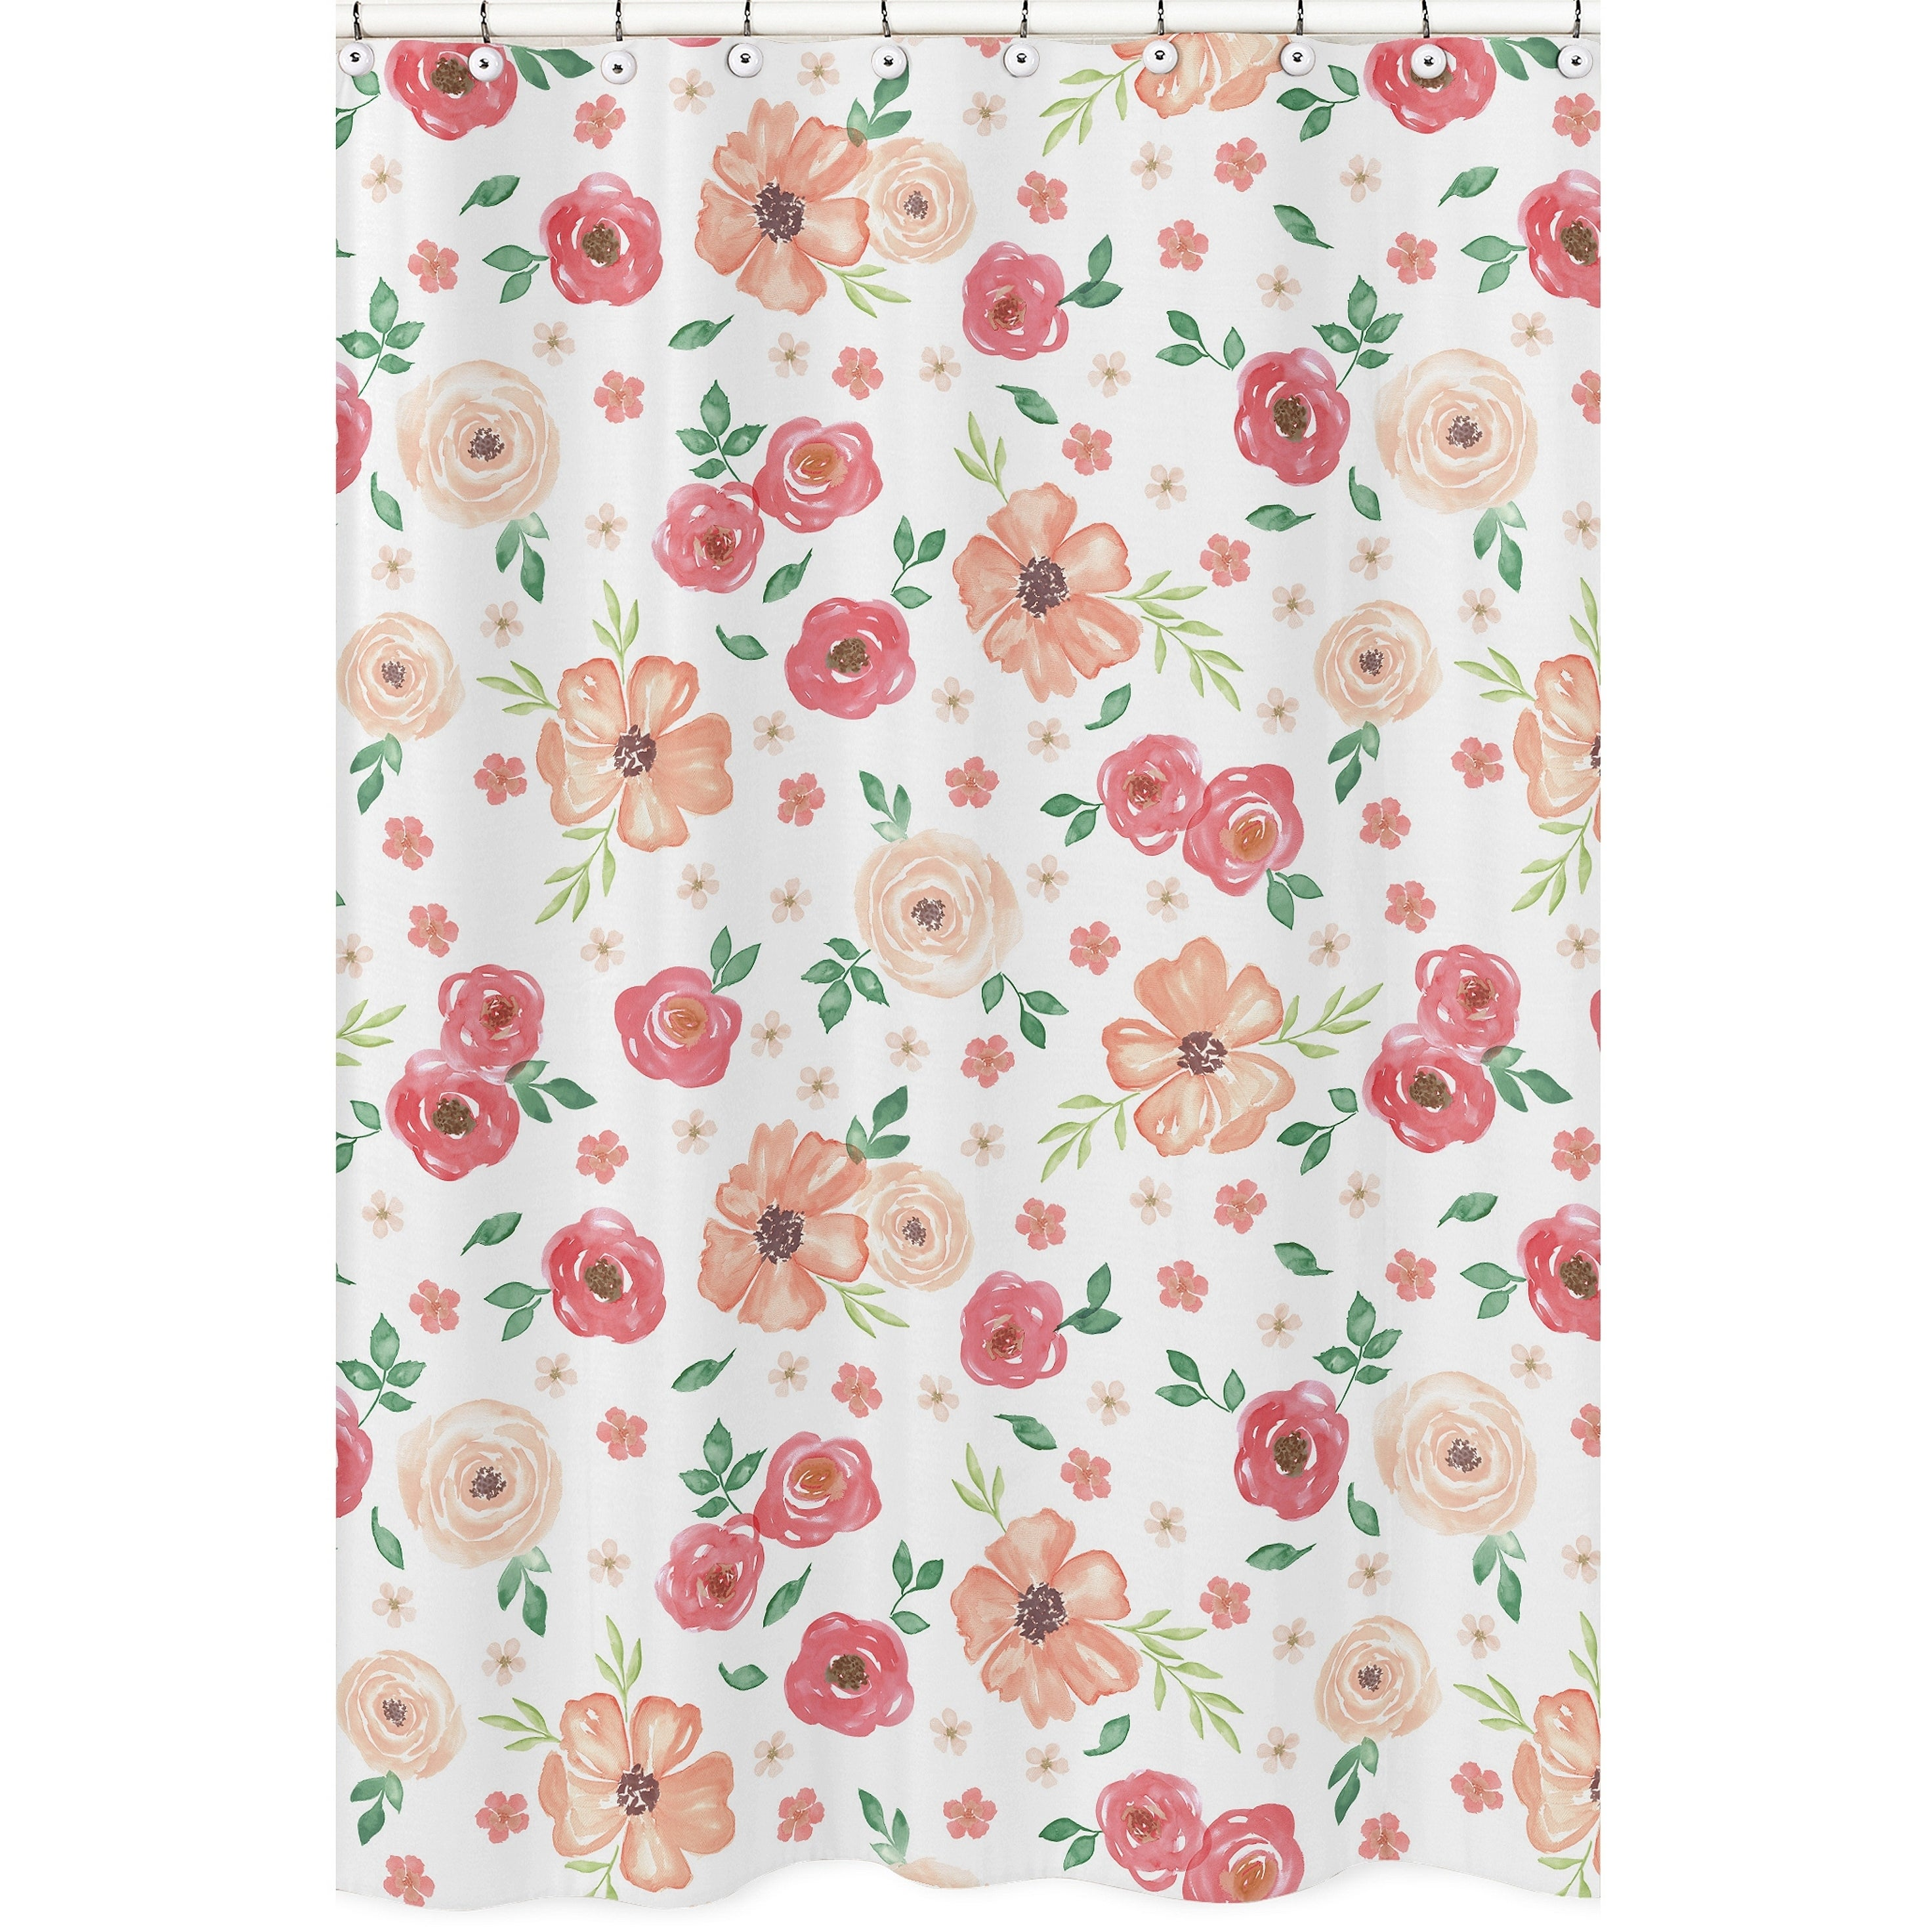 Shop Black Friday Deals On Sweet Jojo Designs Peach And Green Watercolor Floral Collection Bathroom Fabric Bath Shower Curtain Overstock 22378052